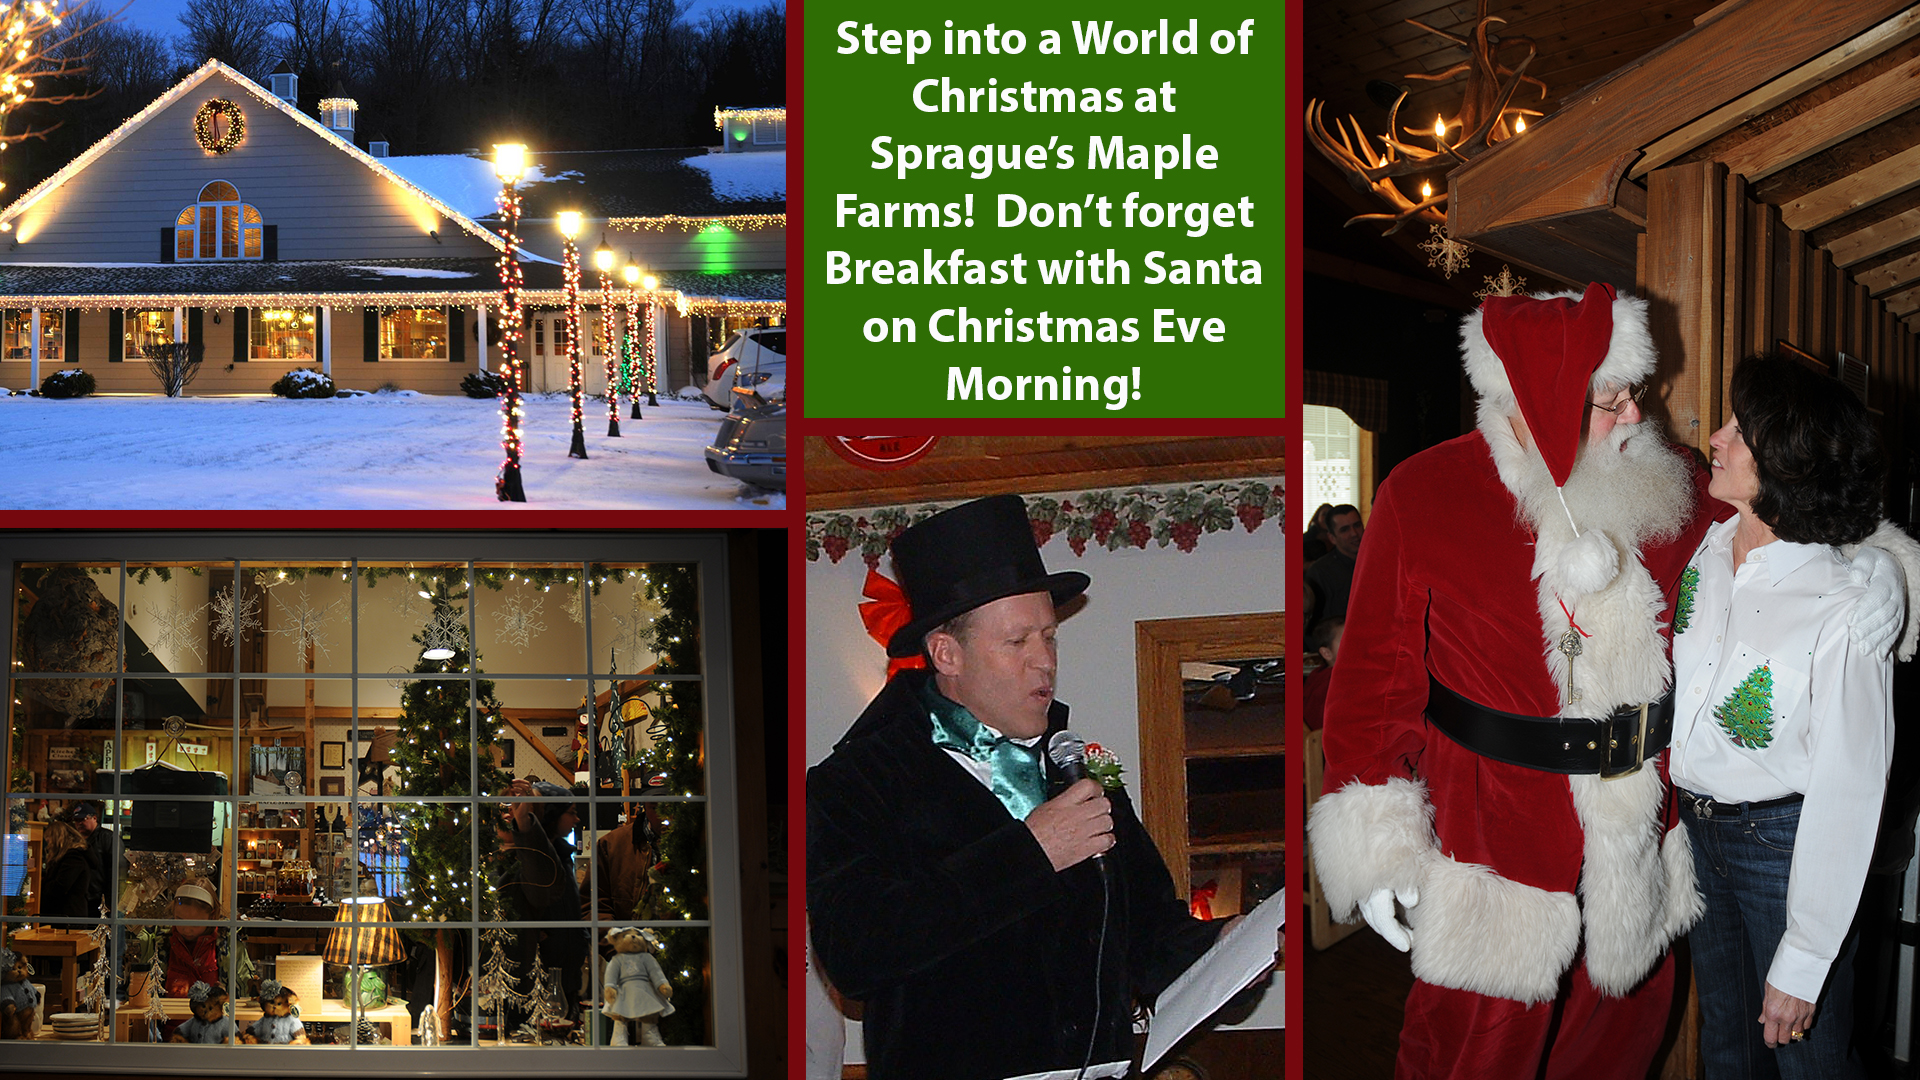 Breakfast with Santa at Sprague's Maple Farms